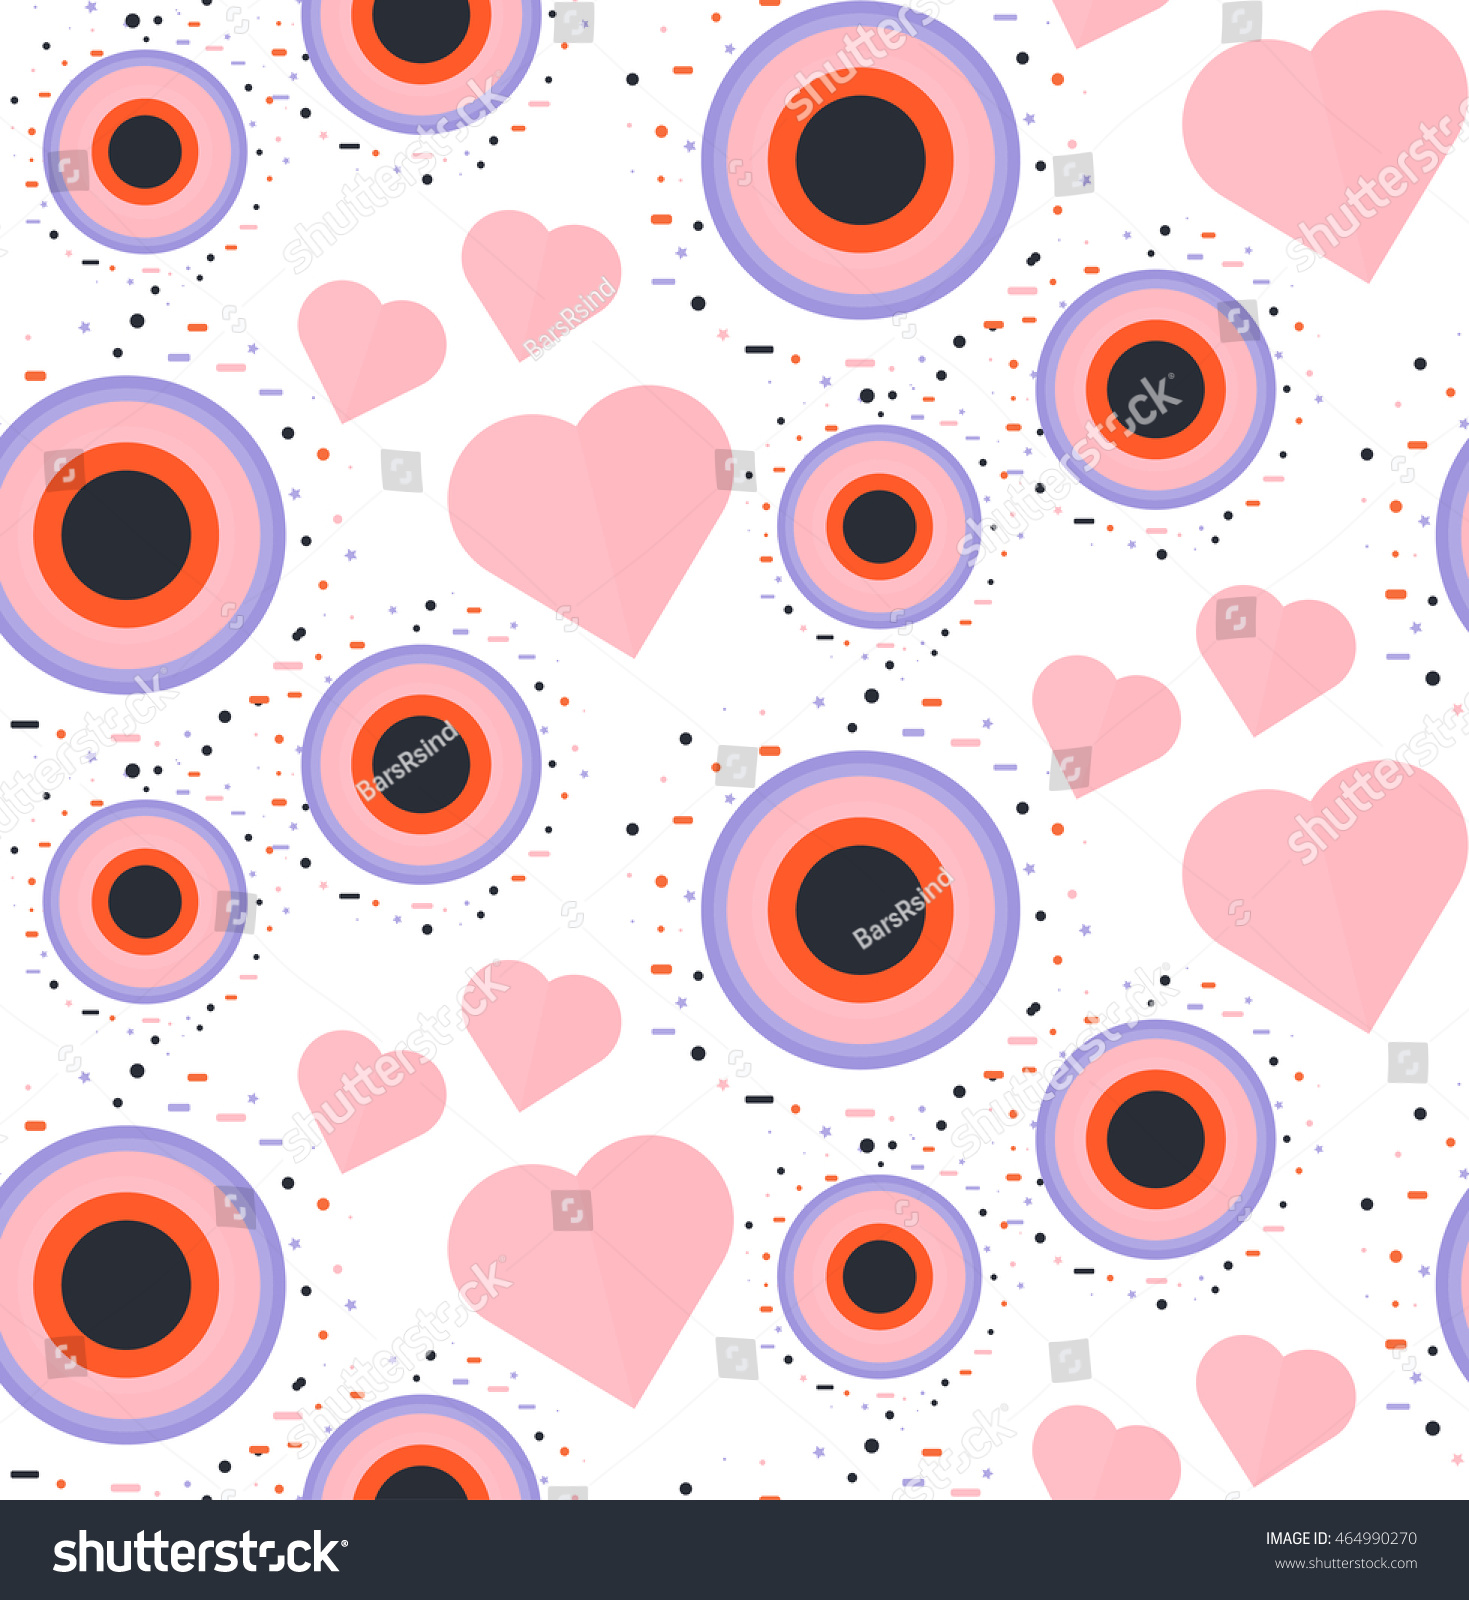 Romantic vector seamless background greeting card wallpaper vector art -  Vectors Illustrations Footage Music Seamless Romantic Pattern For Wrap Print Fabric Textile Greeting Card Ornament